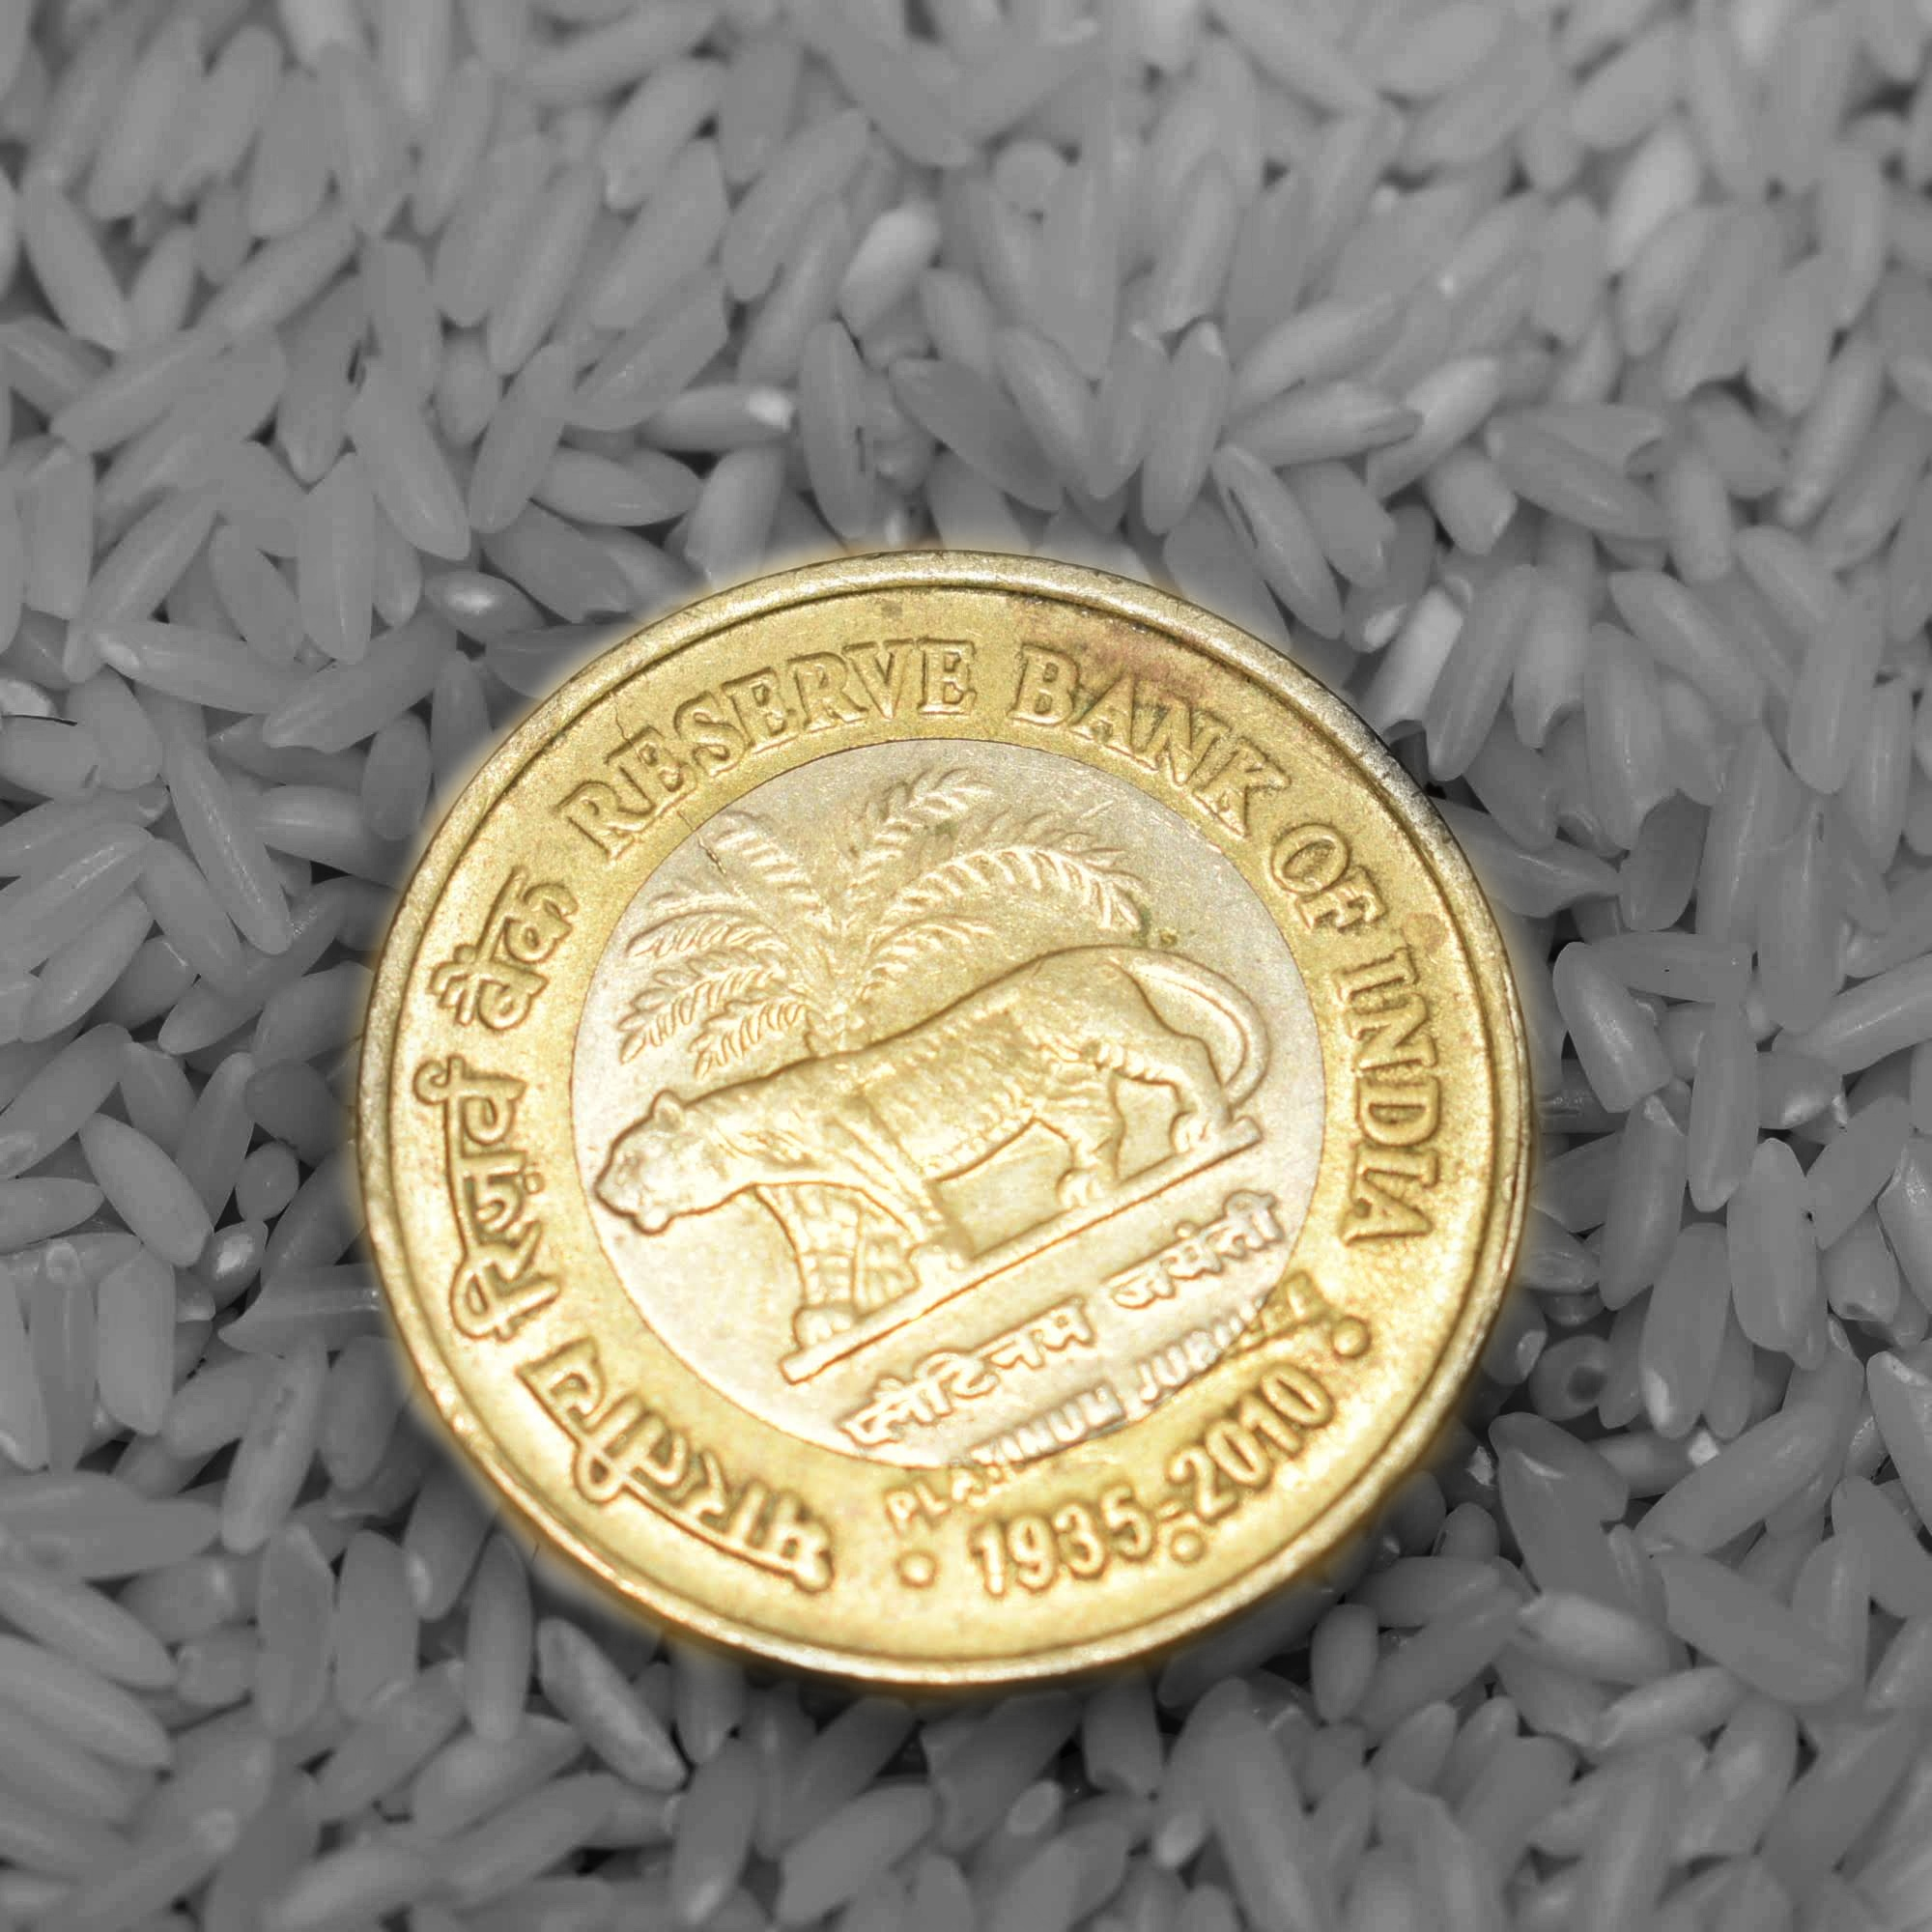 An Indian currency coin